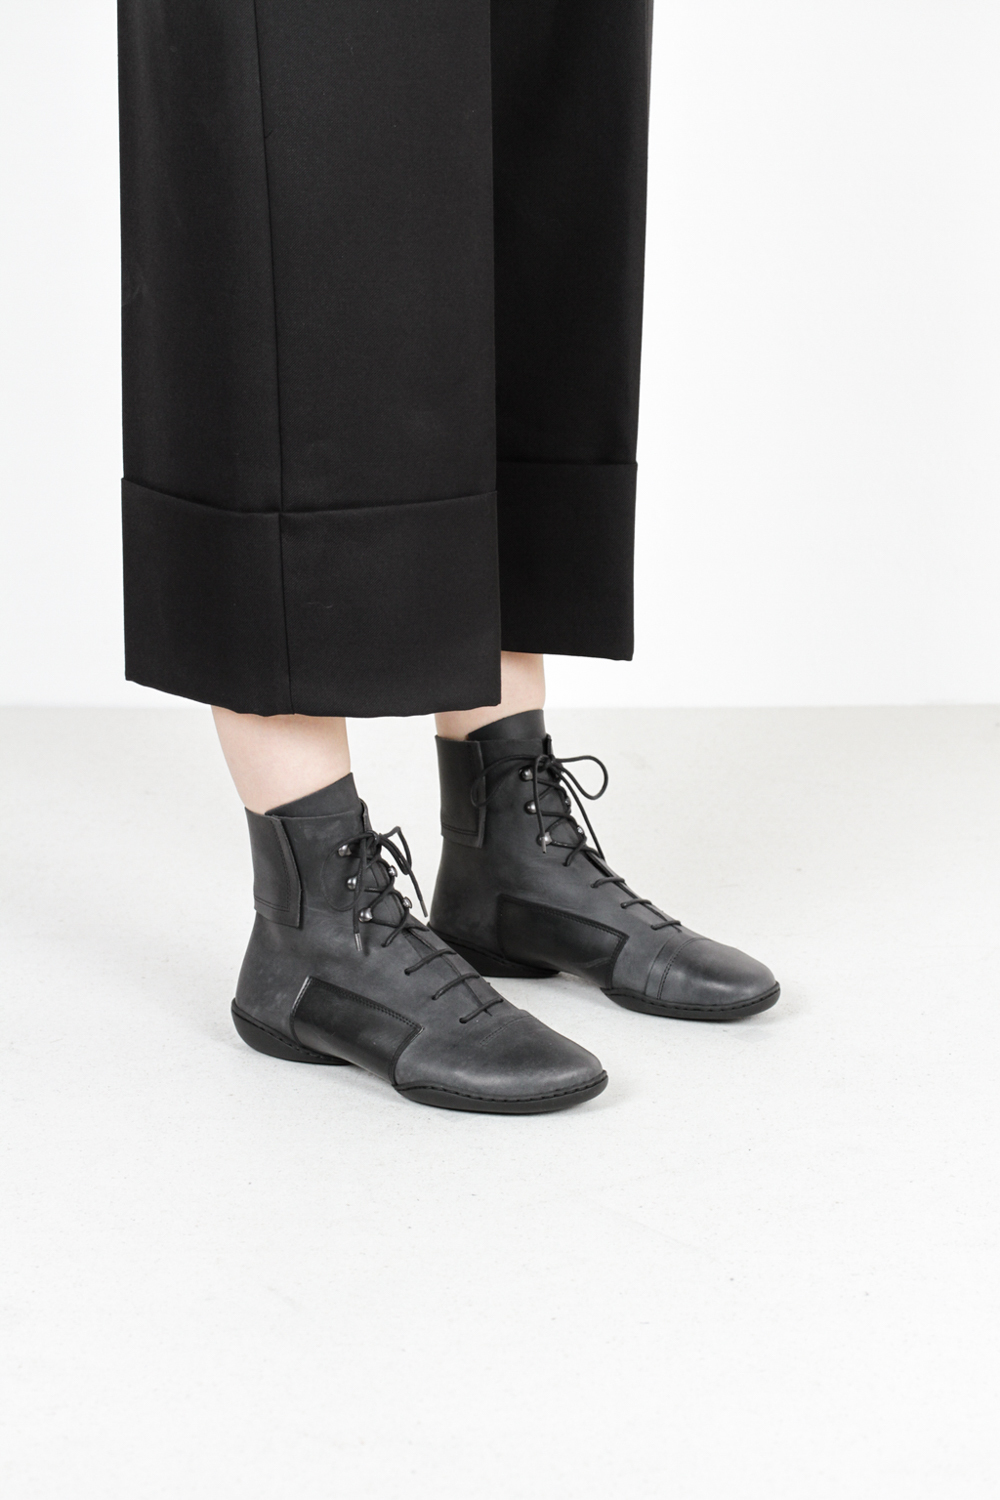 Trippen mind f pul blk leather boots